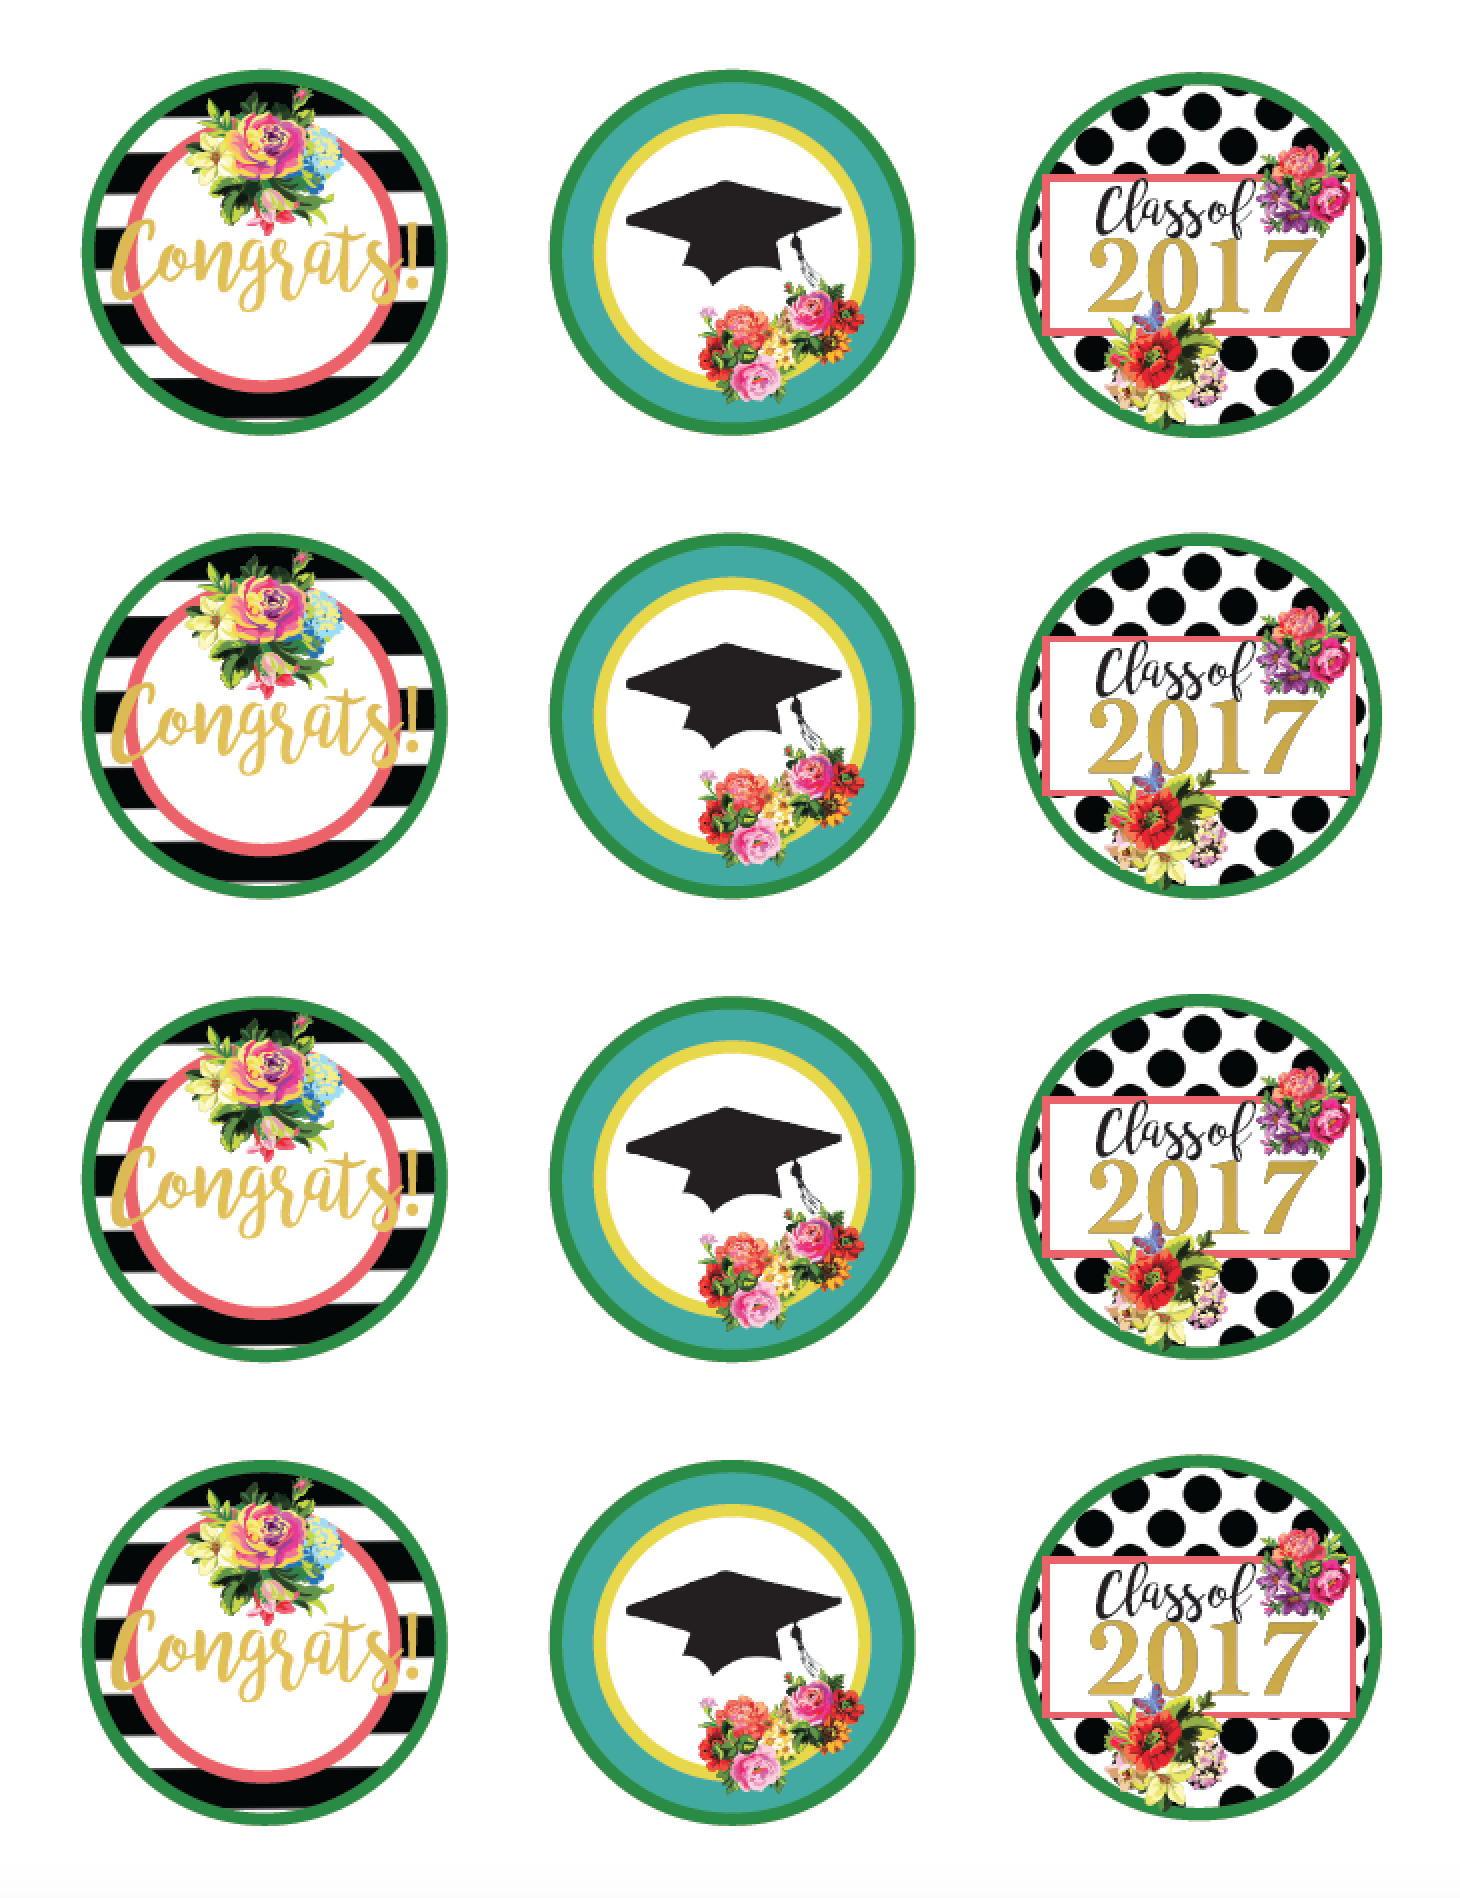 Class of 2017 Free Floral Graduation Party Printables.